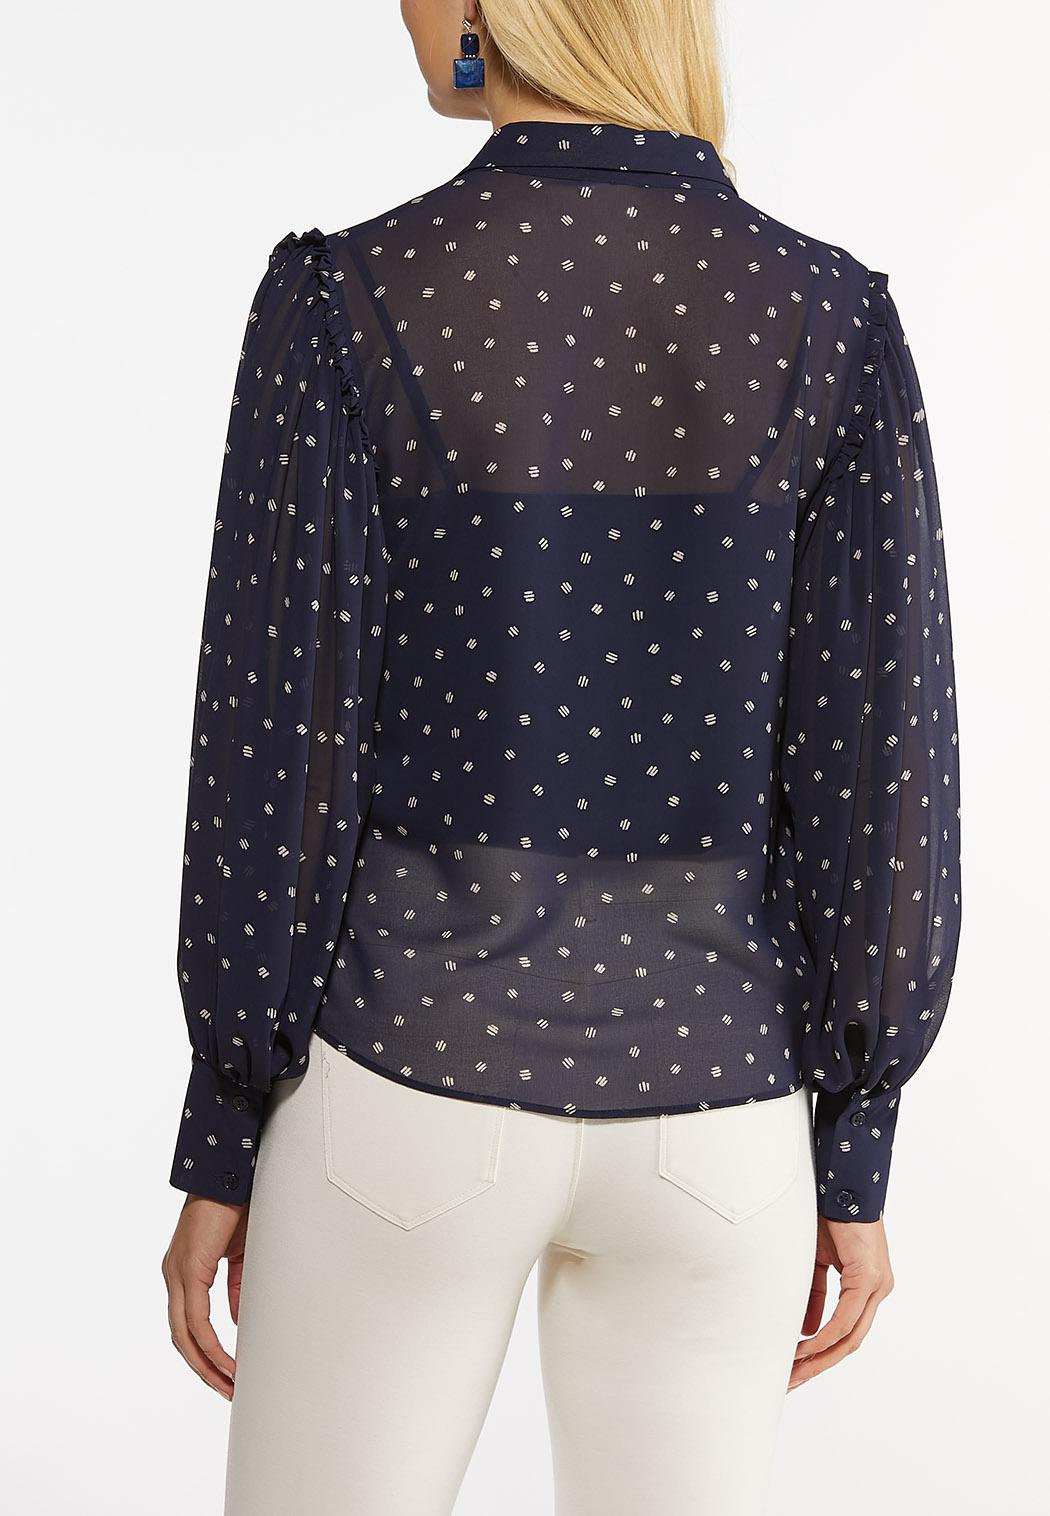 Dotted Dash Top (Item #44475030)